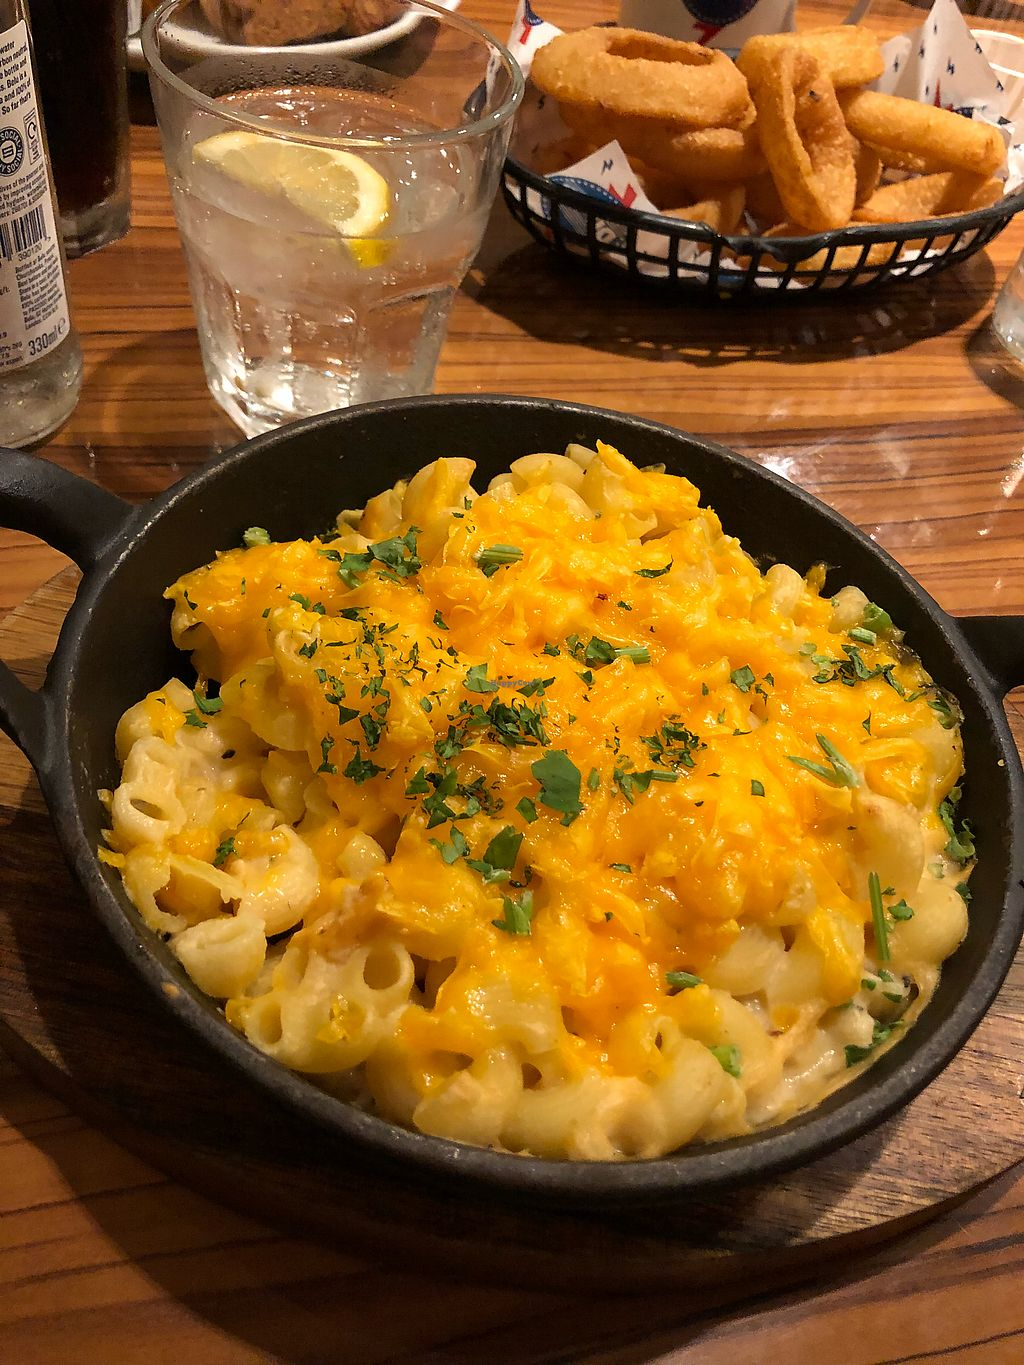 """Photo of The Diner - Islington  by <a href=""""/members/profile/CourtneyK"""">CourtneyK</a> <br/>Mac n cheese <br/> April 13, 2018  - <a href='/contact/abuse/image/104998/384954'>Report</a>"""